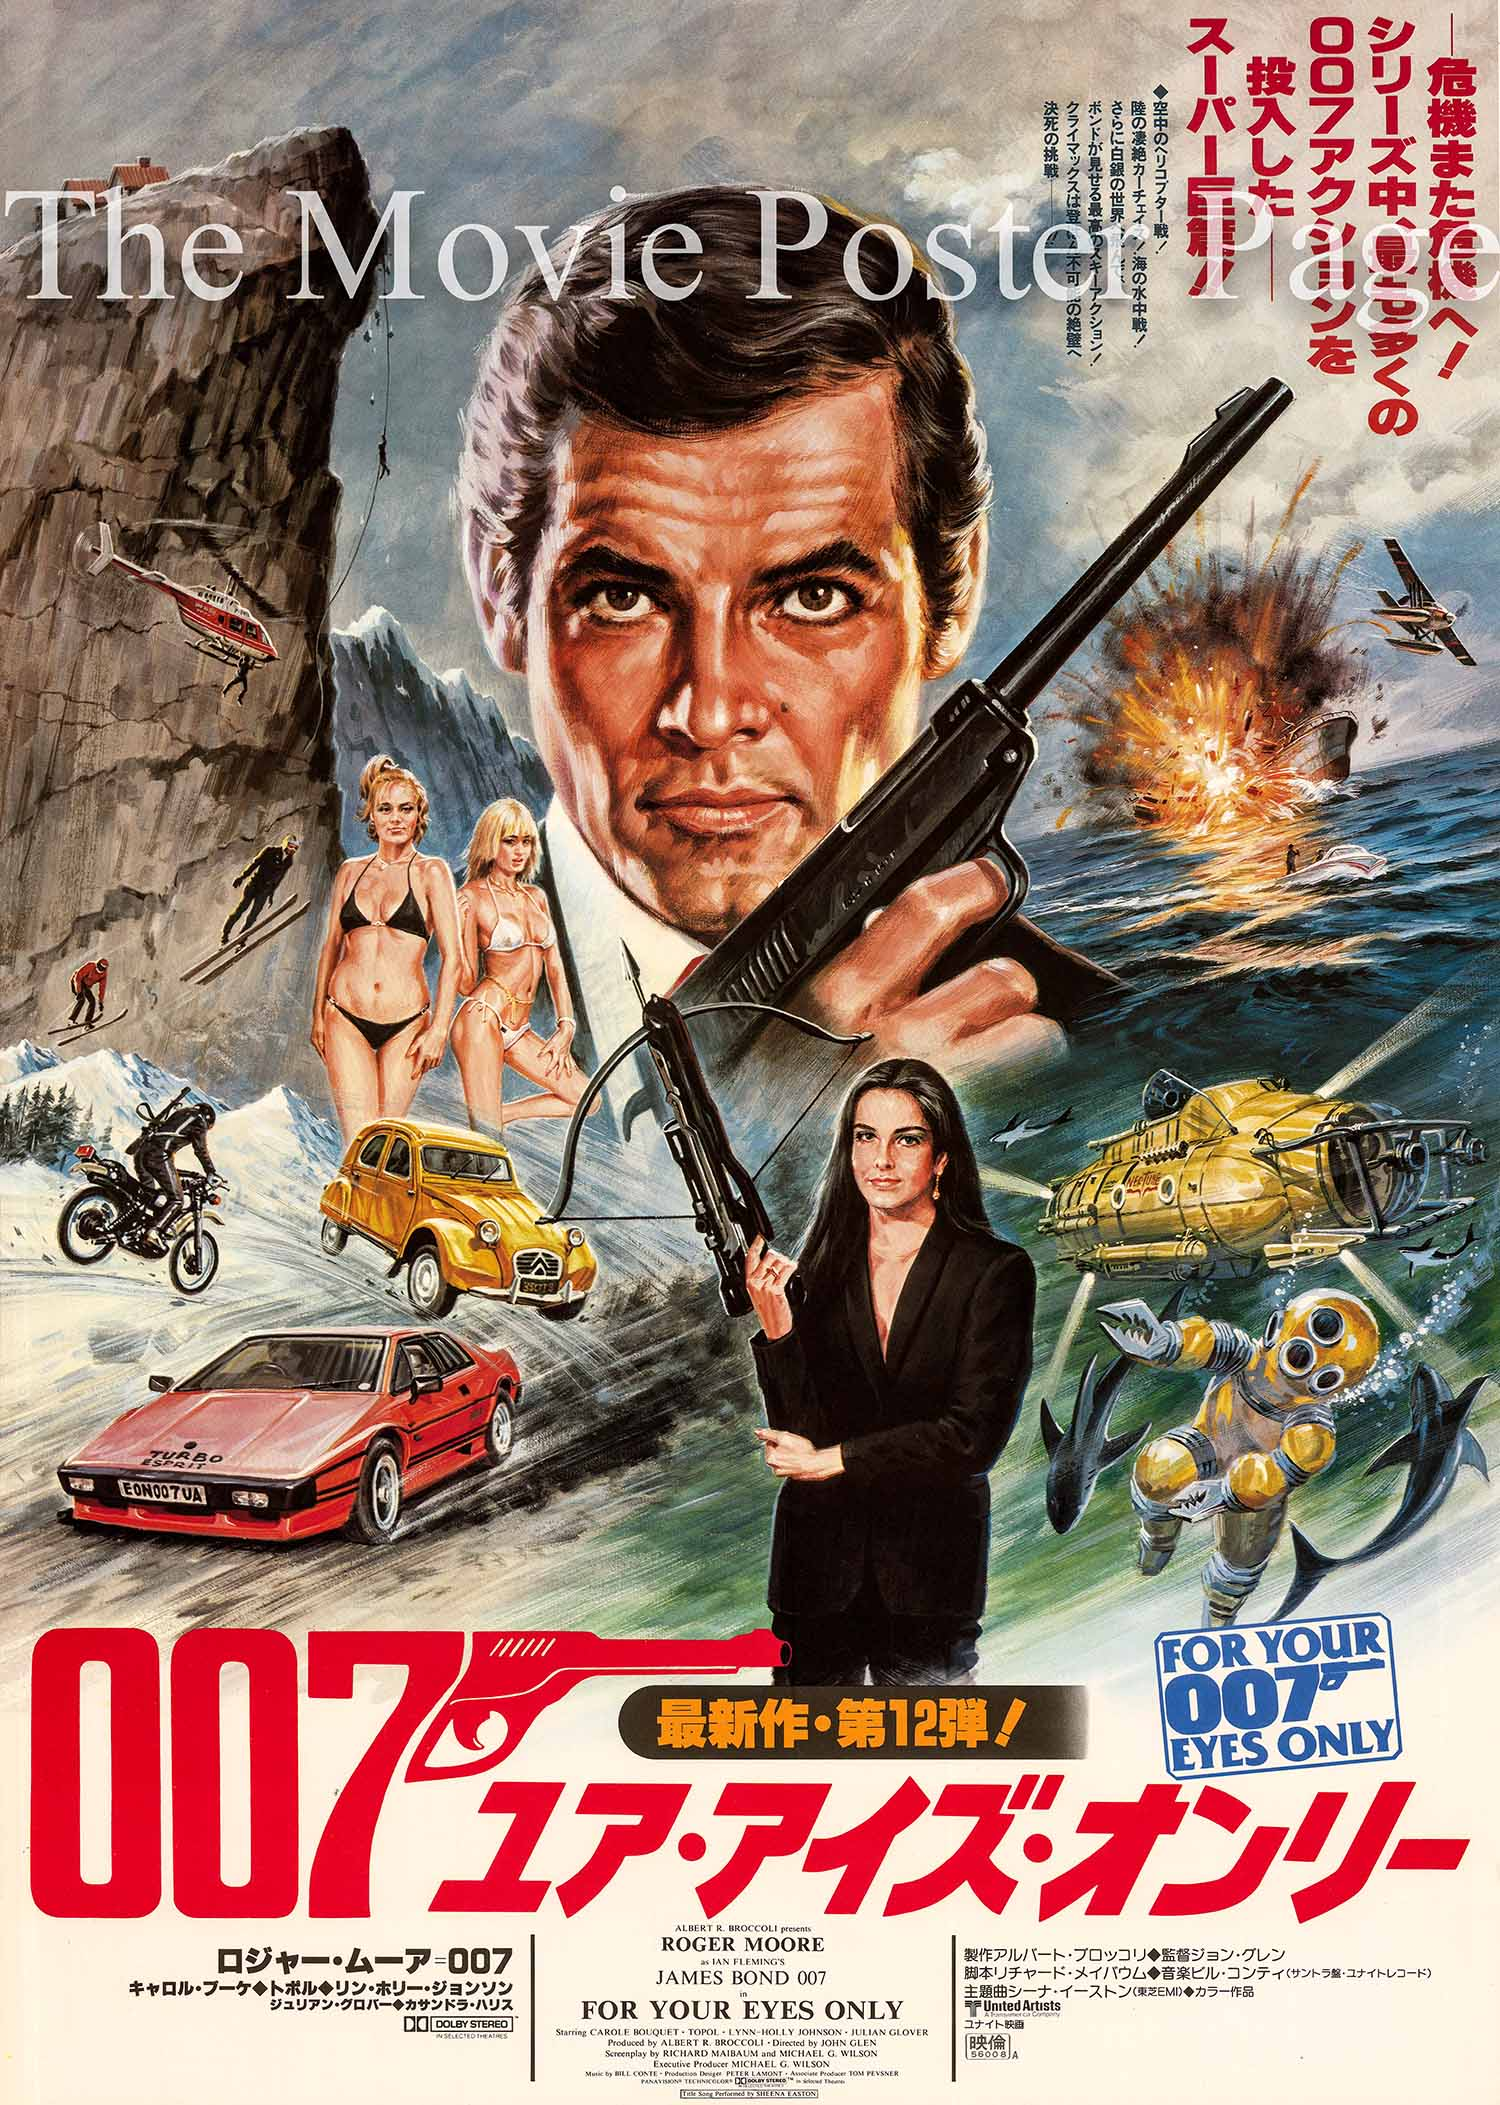 Pictured is a style A Japanese B2 promotional poster for the 1981 John Glen James Bond film For Your Eyes Only starring Roger Moore.